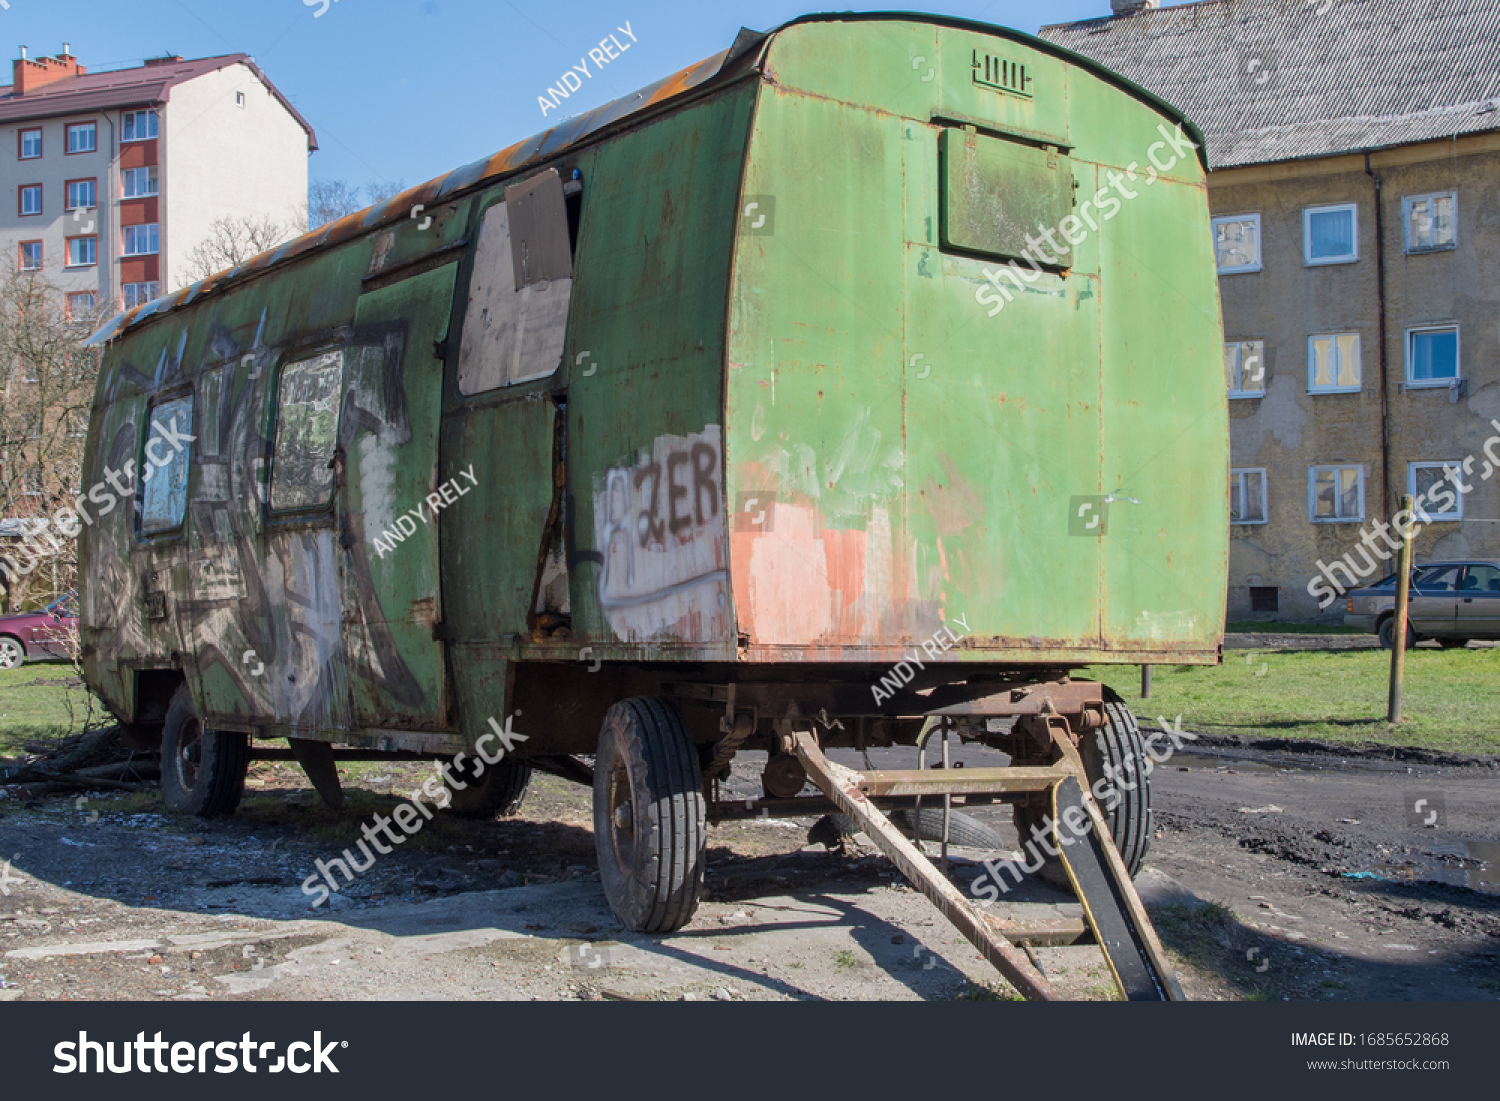 KALININGRAD, RUSSIA – 22 MARCH, 2020:  Green, battered, dented long metal trailer on wheels with closed windows and traces of graffitit, standing in a courtyard surrounded by beige apartment buildings